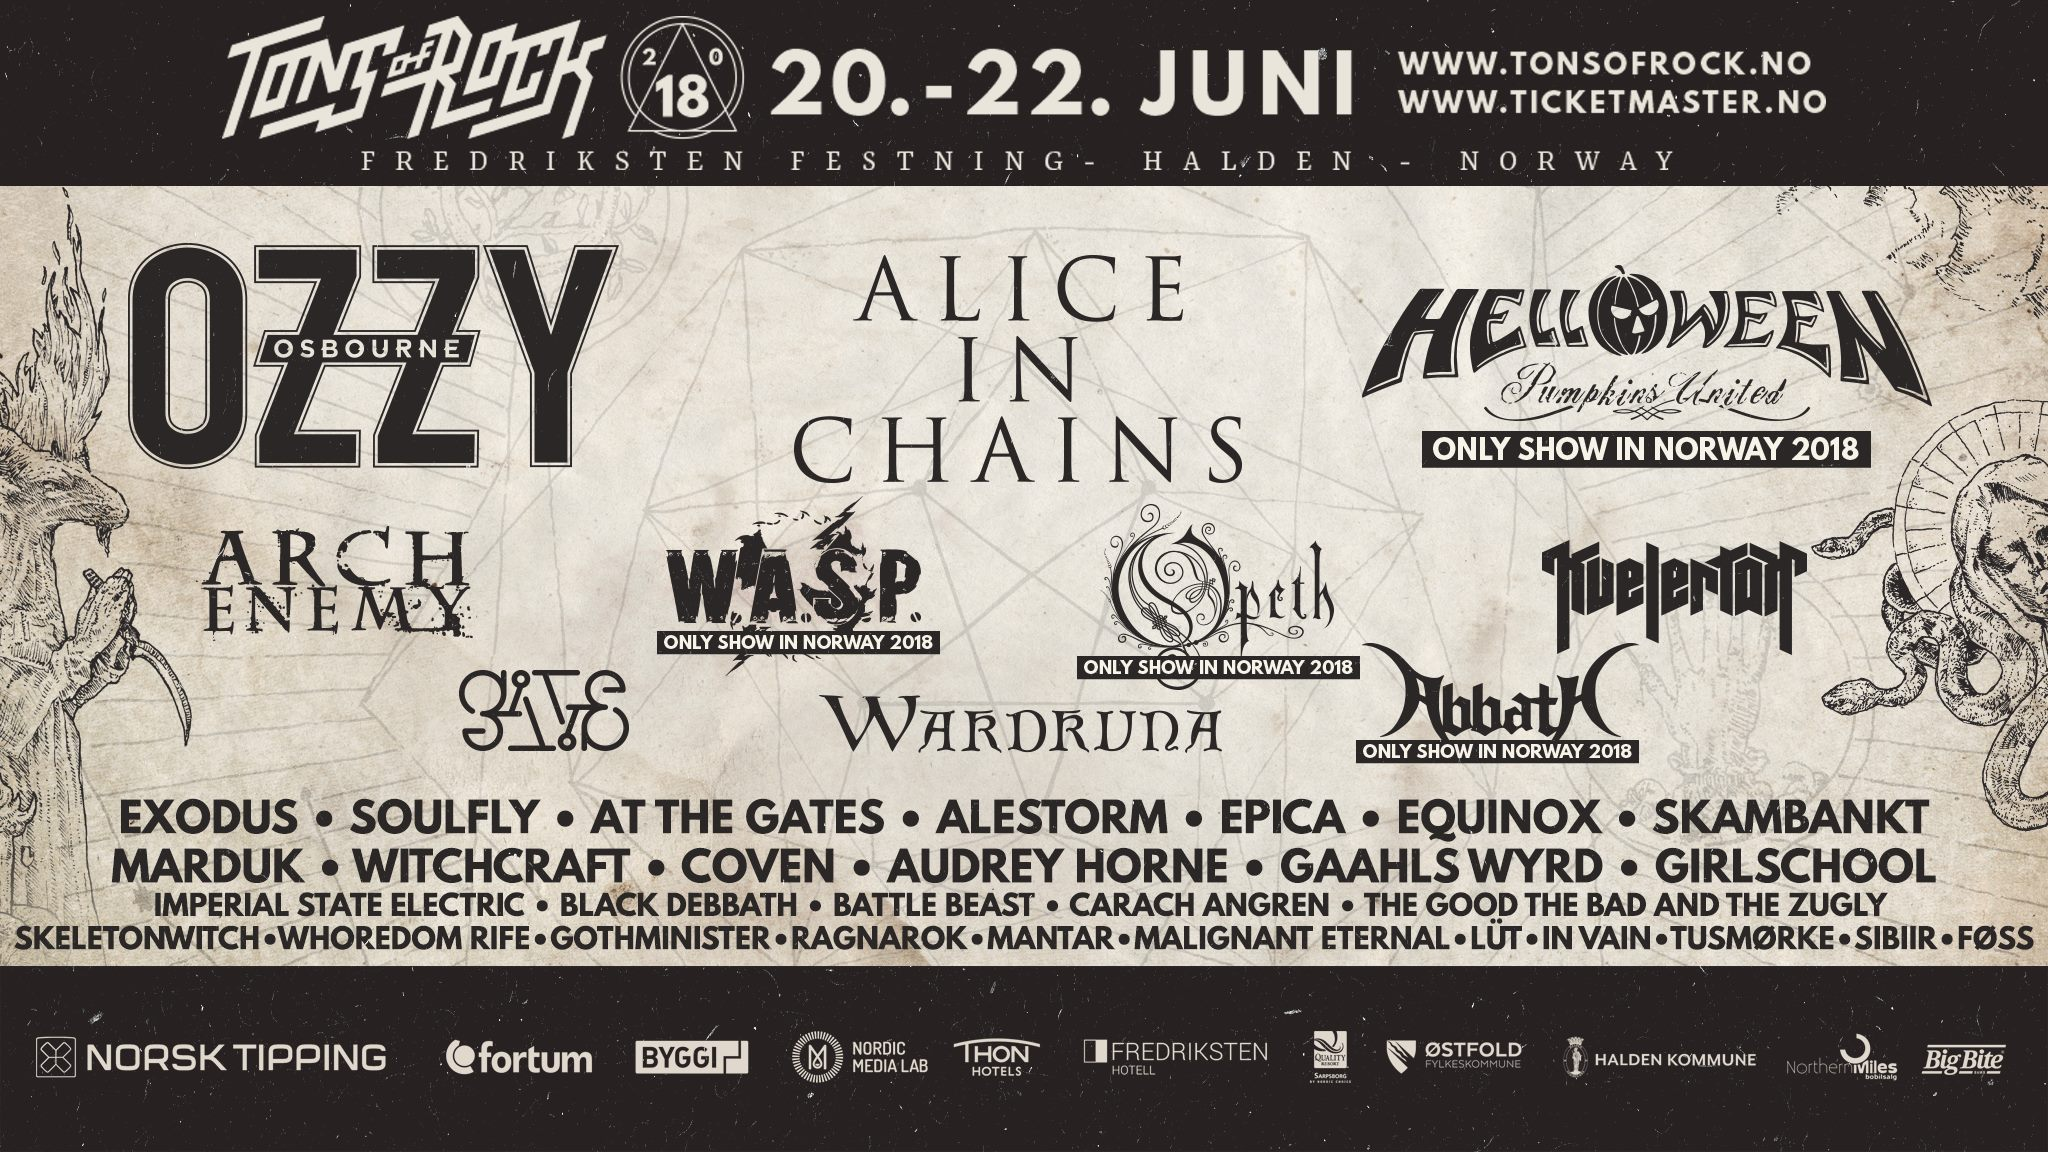 Tons of Rock 2018